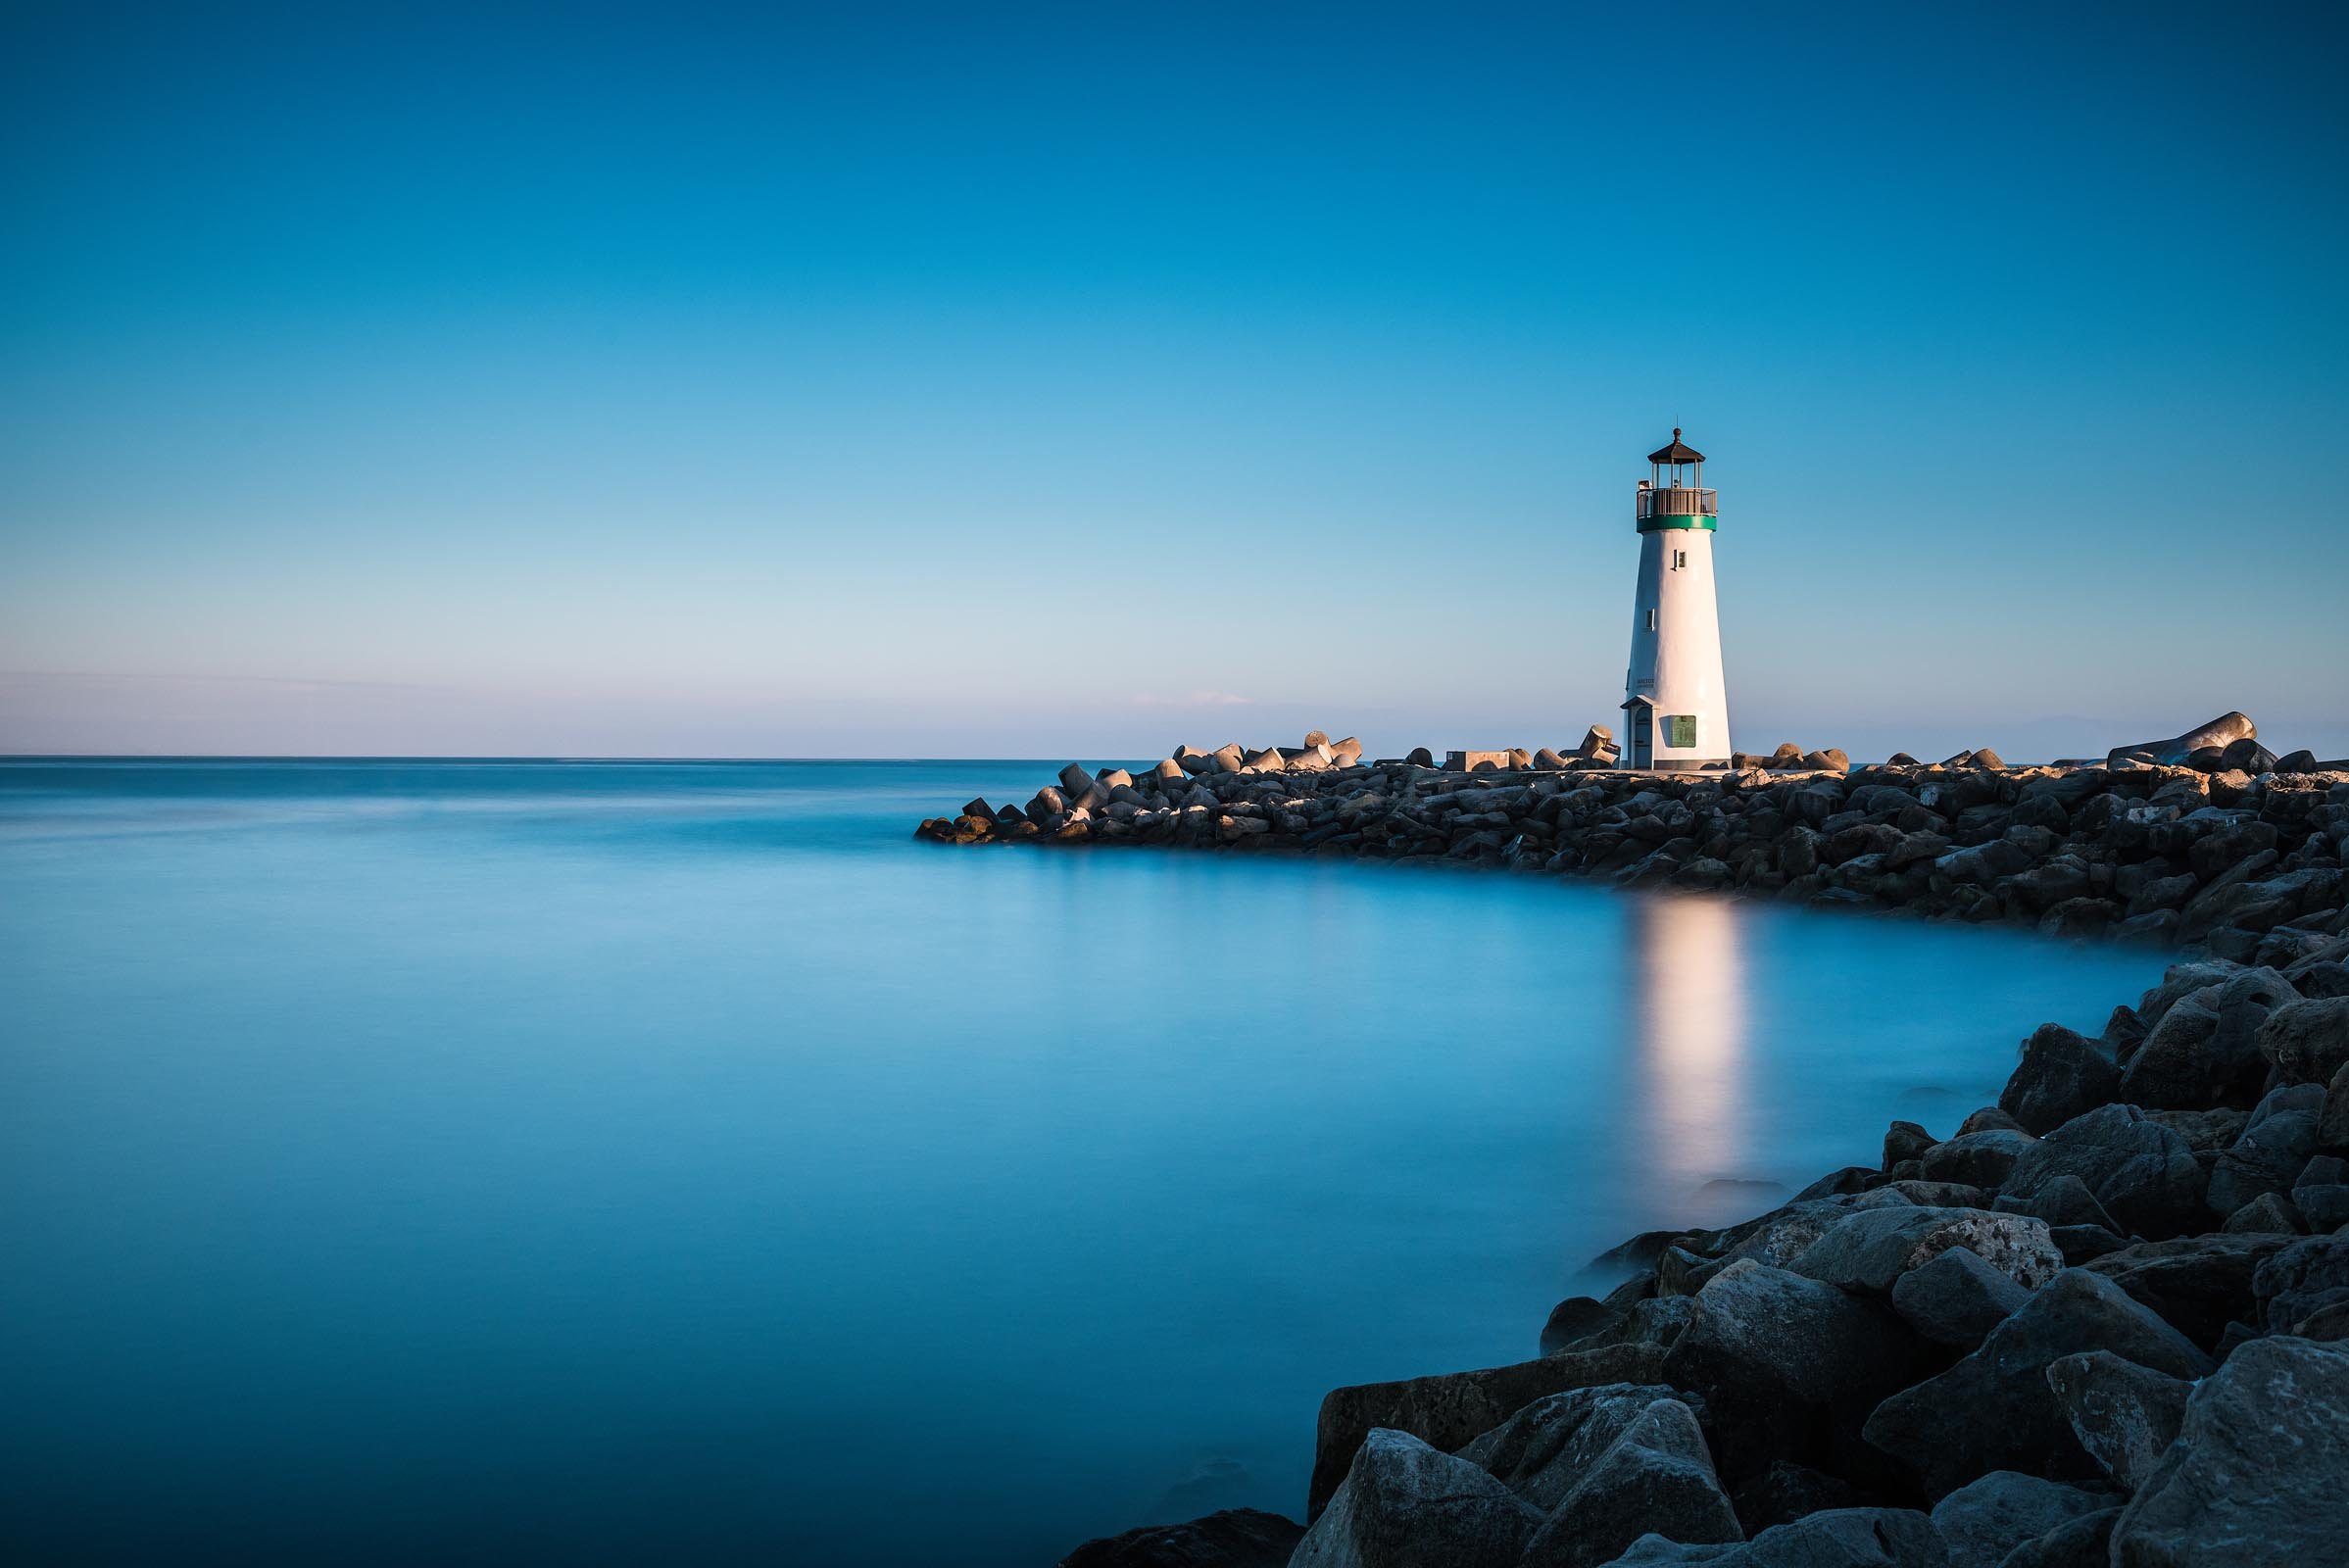 Photograph of Walton Lighthouse in Santa Cruz, California by Brent Goldman Photography